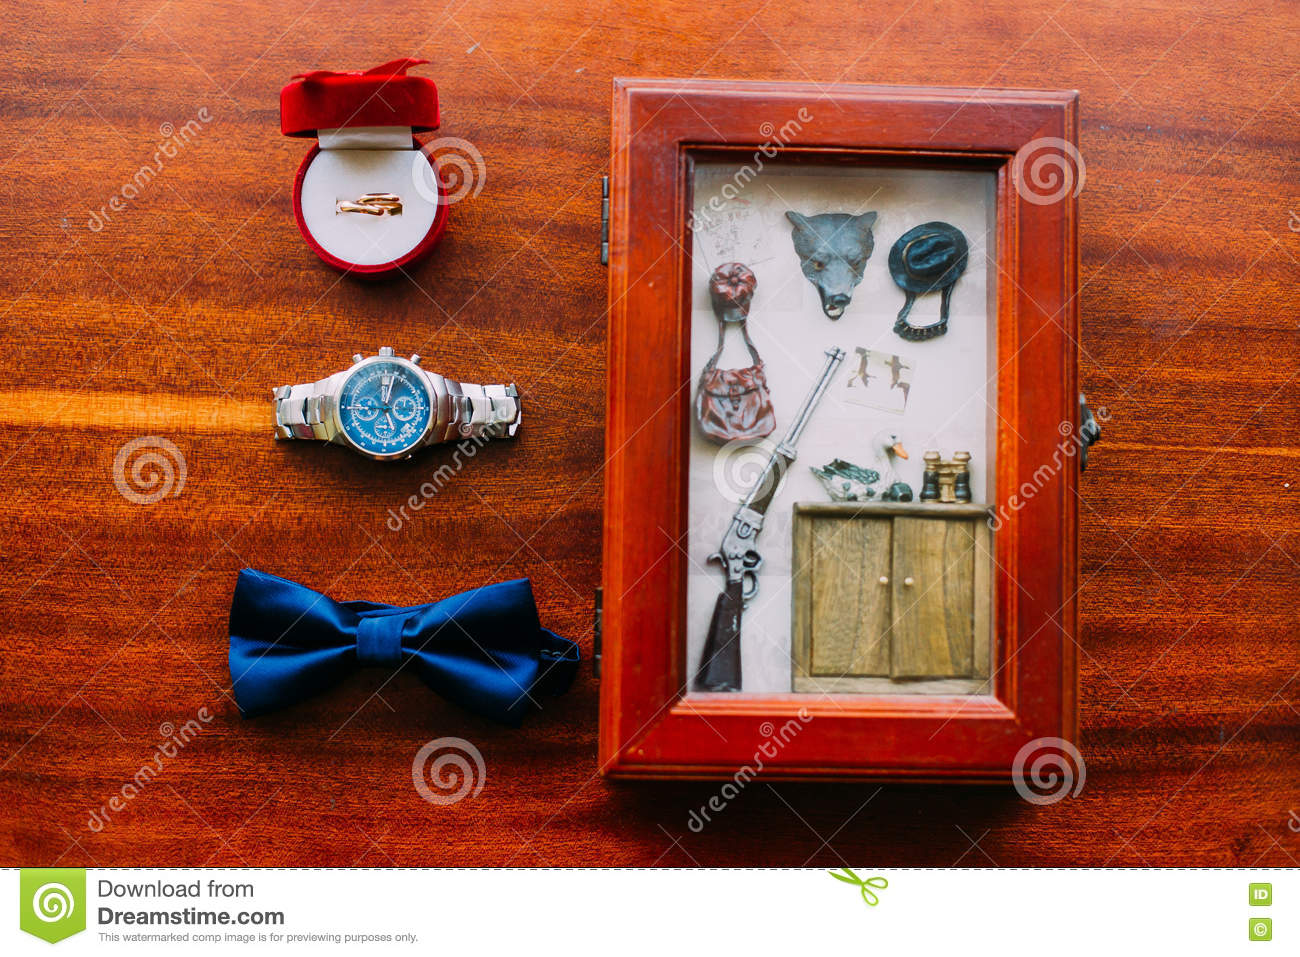 847cf800c8c Wedding set of men`s stylish watch and bow-tie on a brown wooden background  with wedding rings and postcard in rustic style.